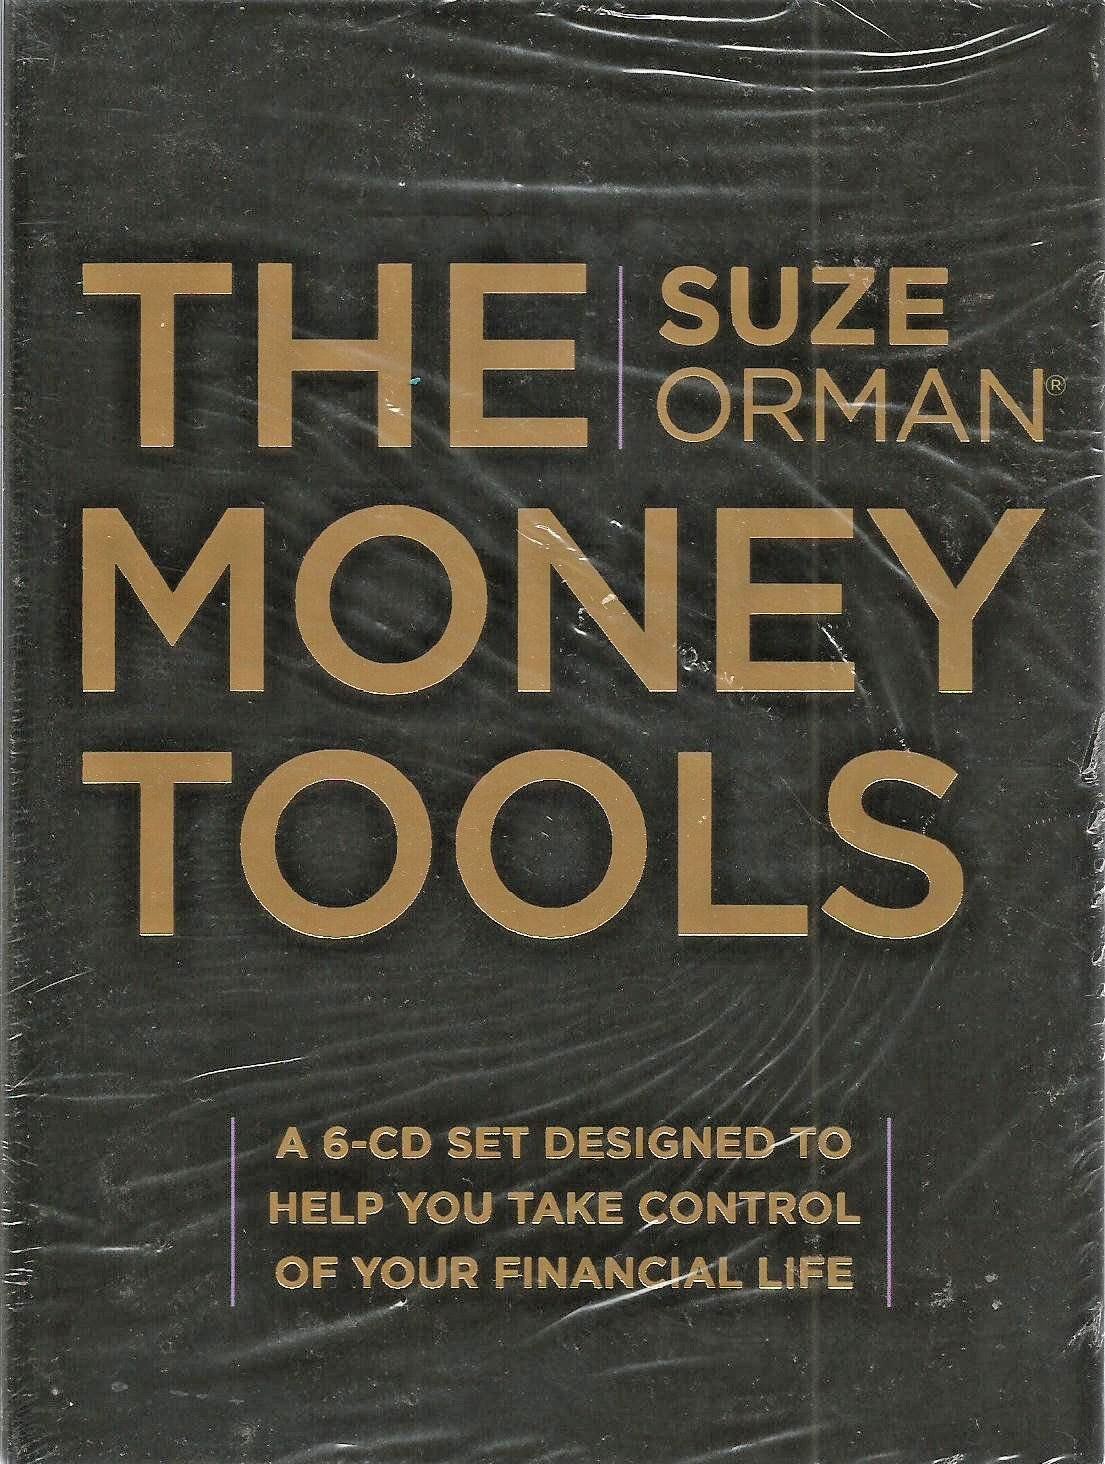 Suze Orman: The Money Tools 6-CD Set Audiobook  [New] Finance Business